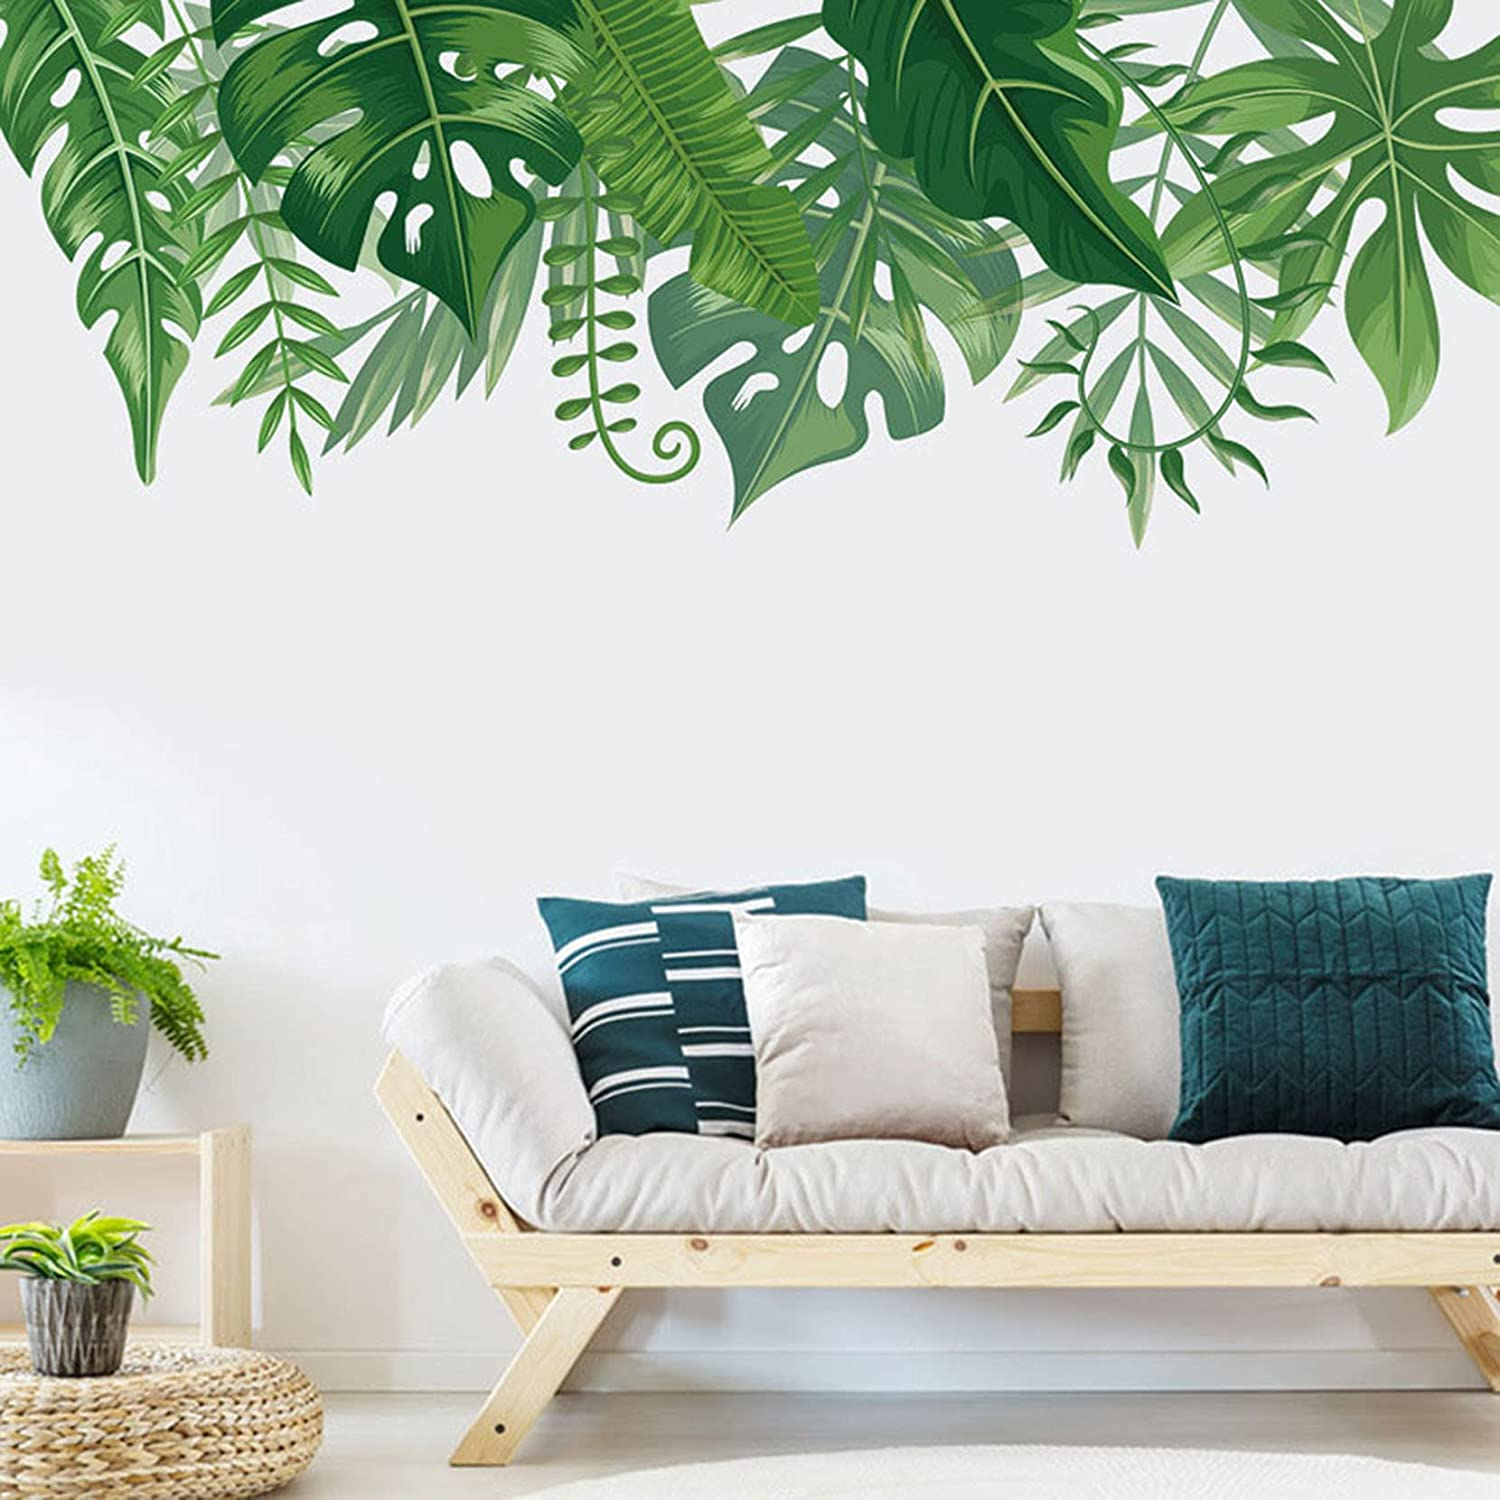 Tropical Leaves Wall Stickers, Palm Tree Wall Decals, Green Leaves Wall Paper, Removable Vinyl Peel and Stick Art Murals for Living Room TV Background Bedroom, Girls Room, Nursery Office